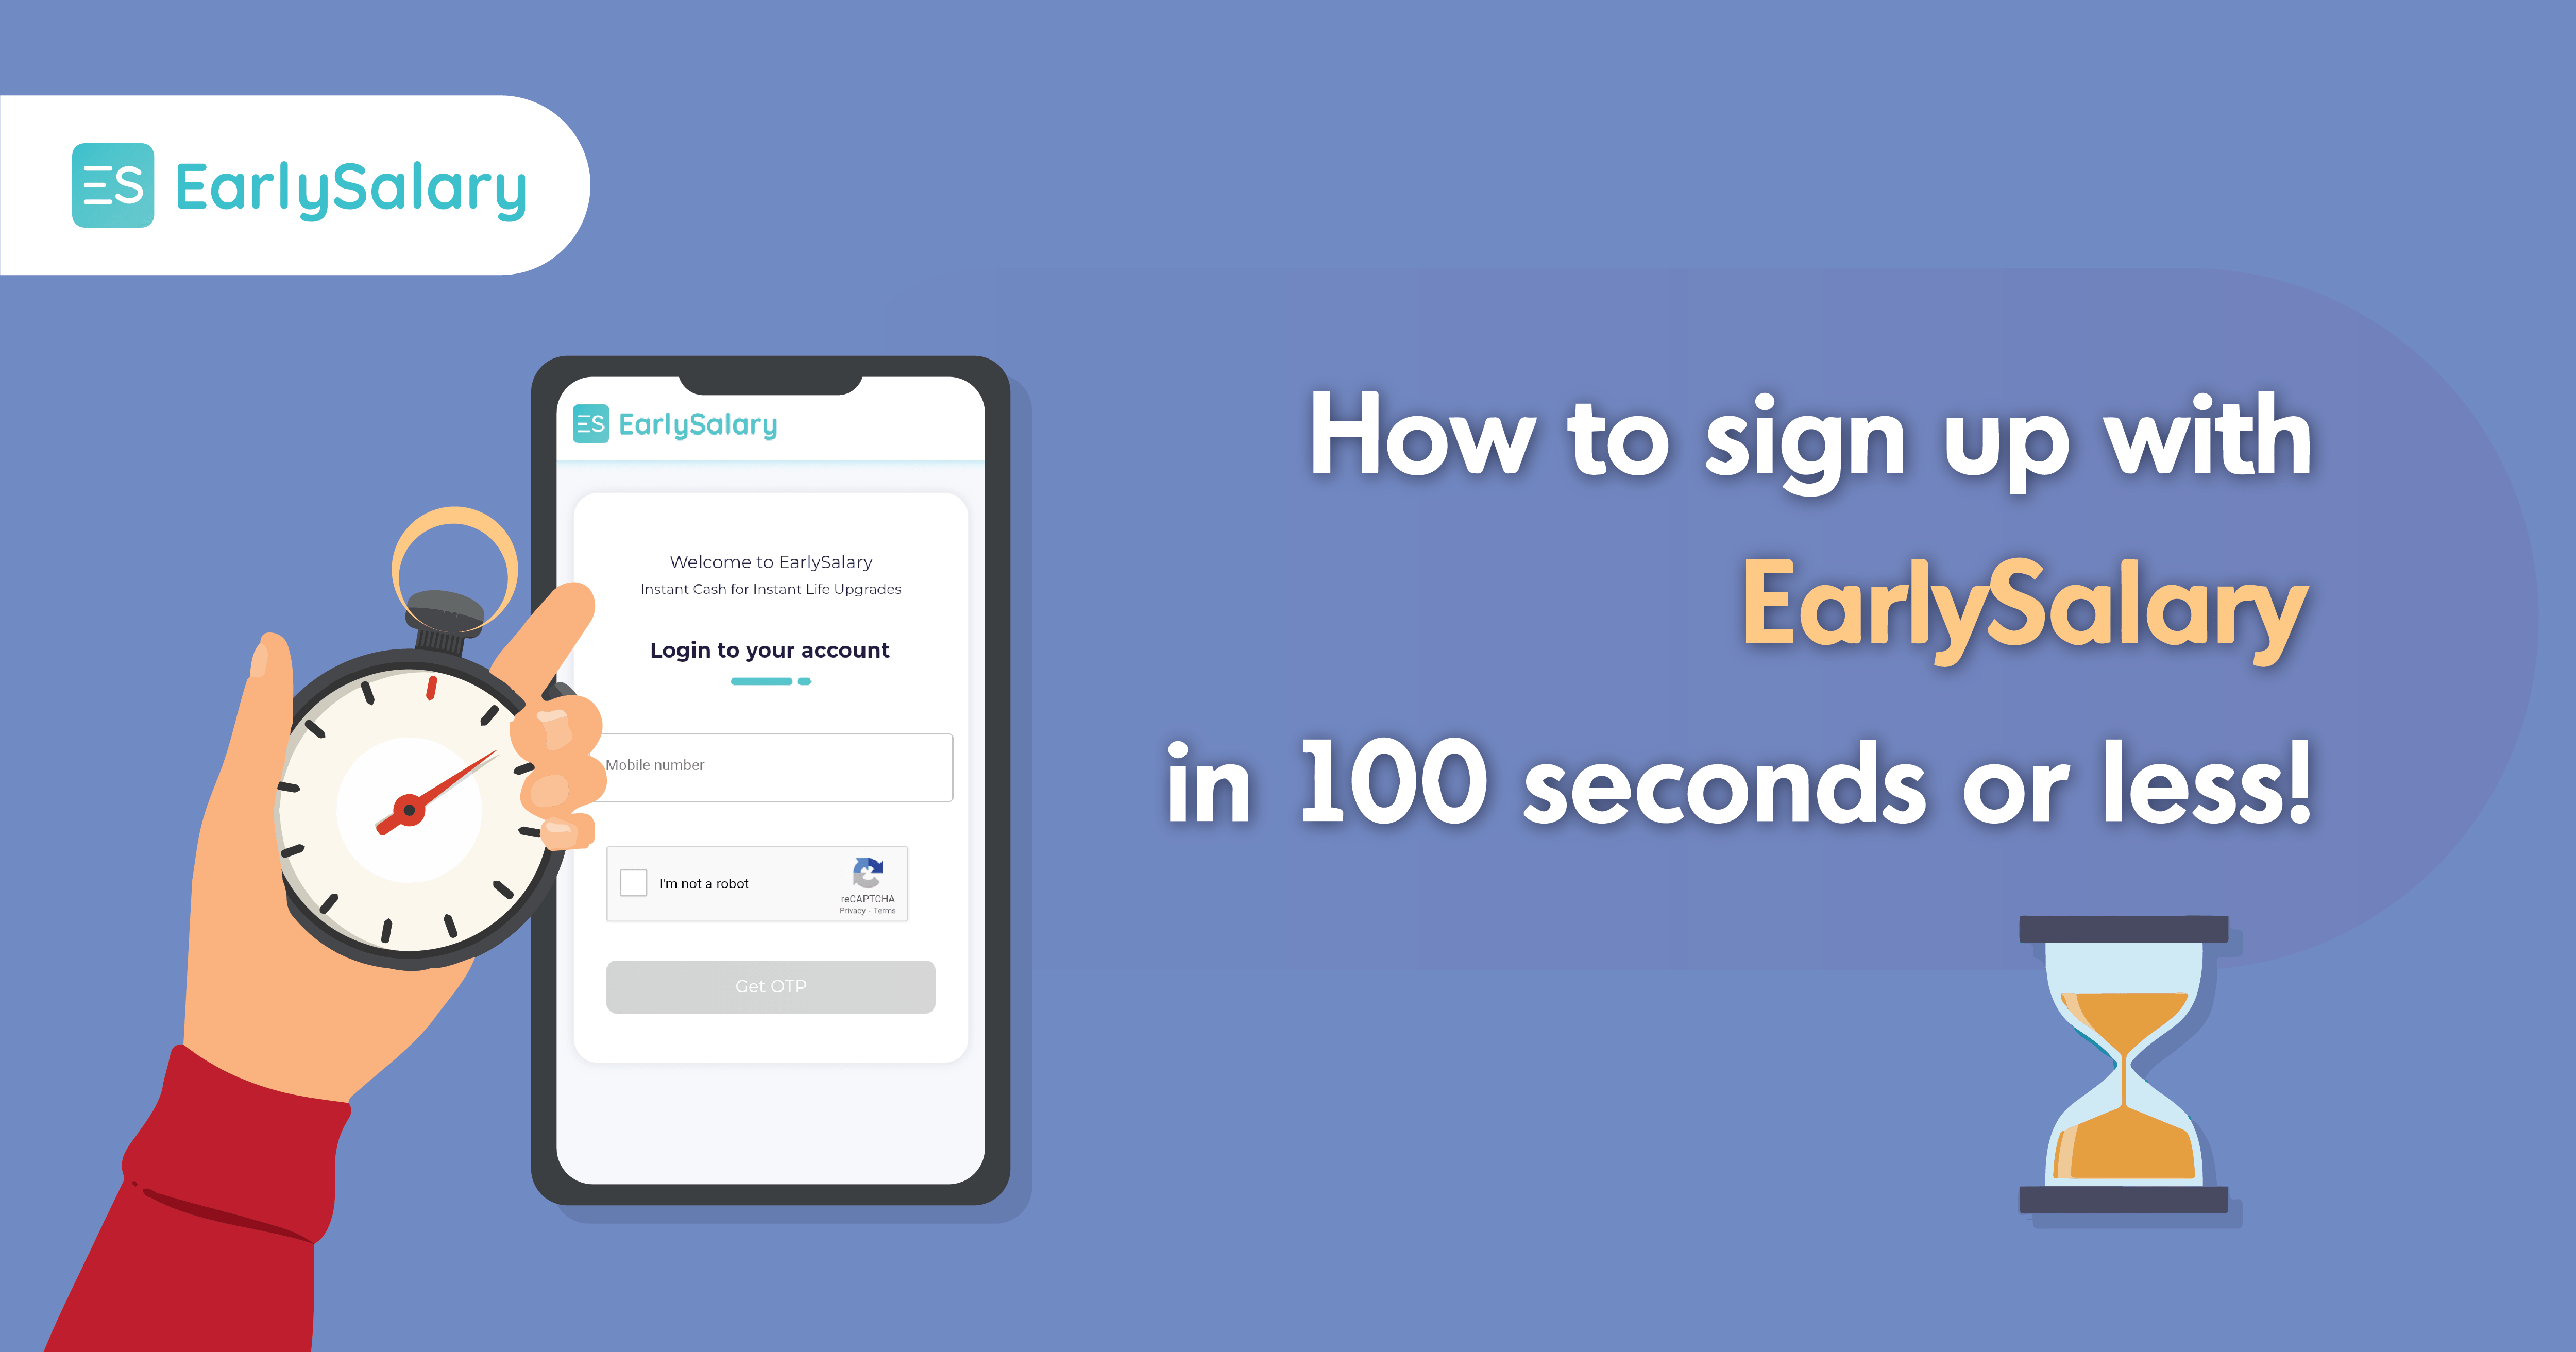 How to sign up with EarlySalary in 100 seconds or less